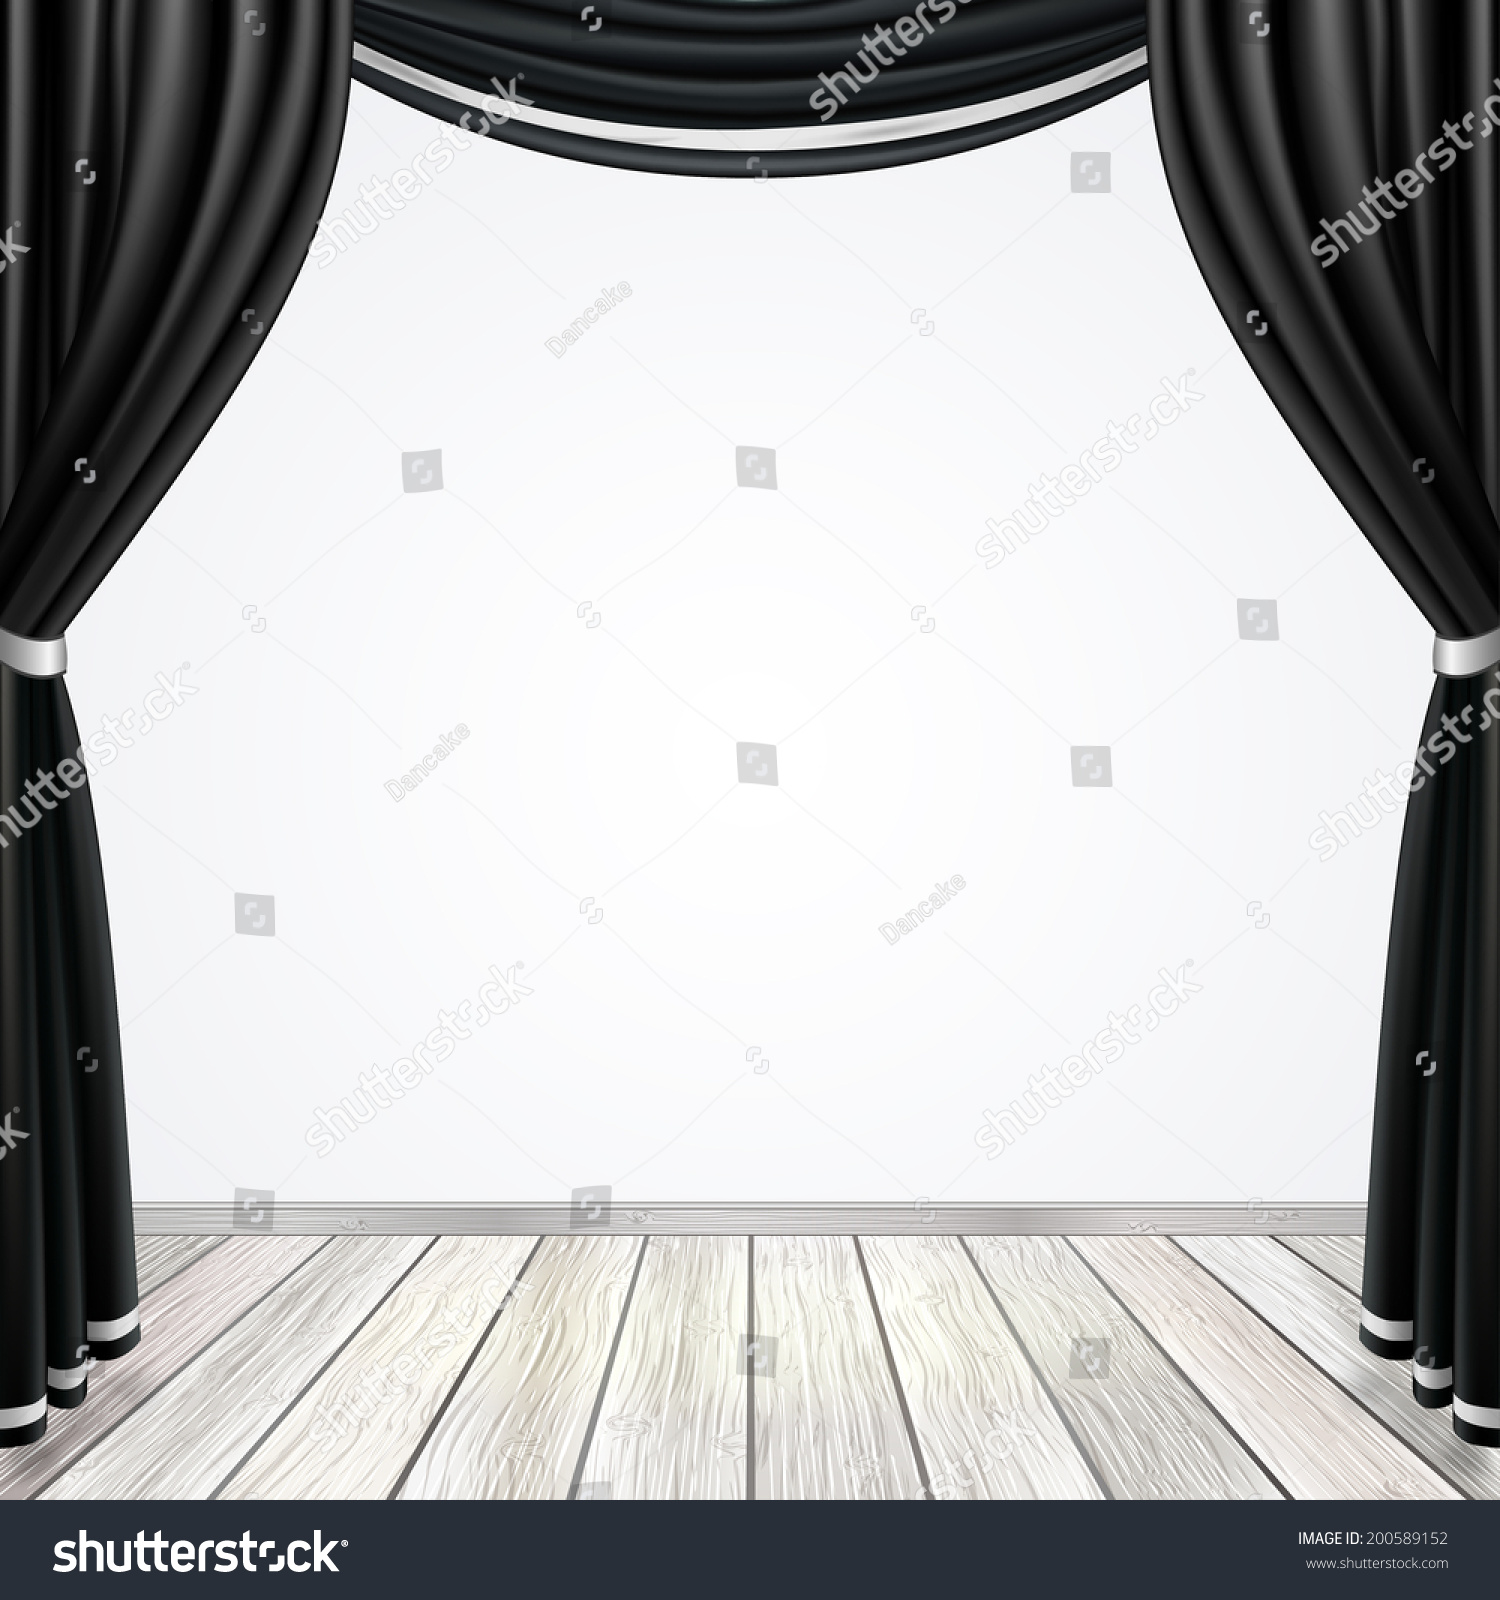 Empty Stage With Black Curtains Drapes And Light Wooden ...